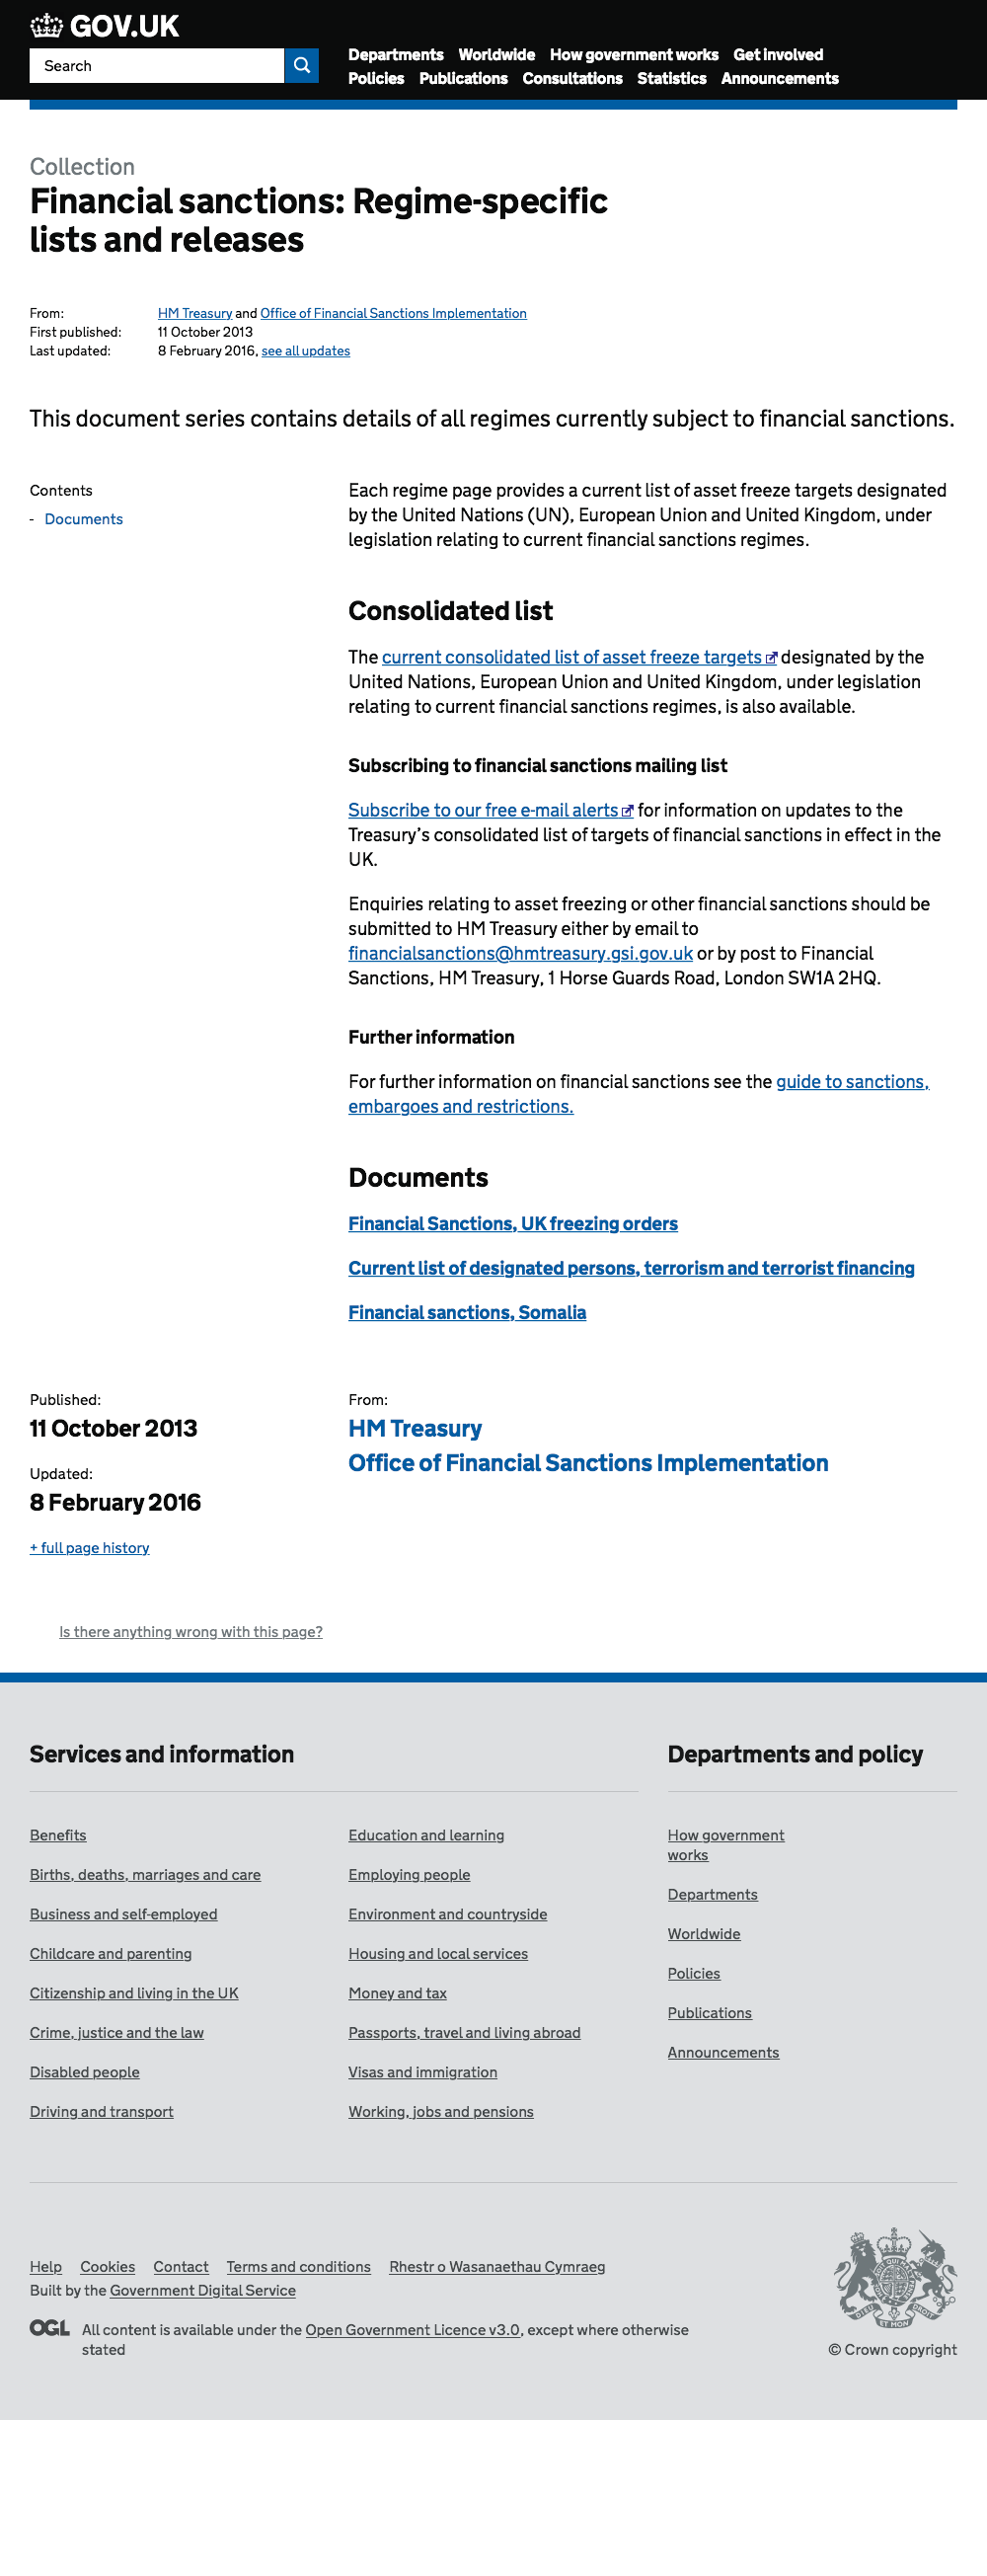 financial sanctions-regime-specific lists and releases - gov uk 20160524